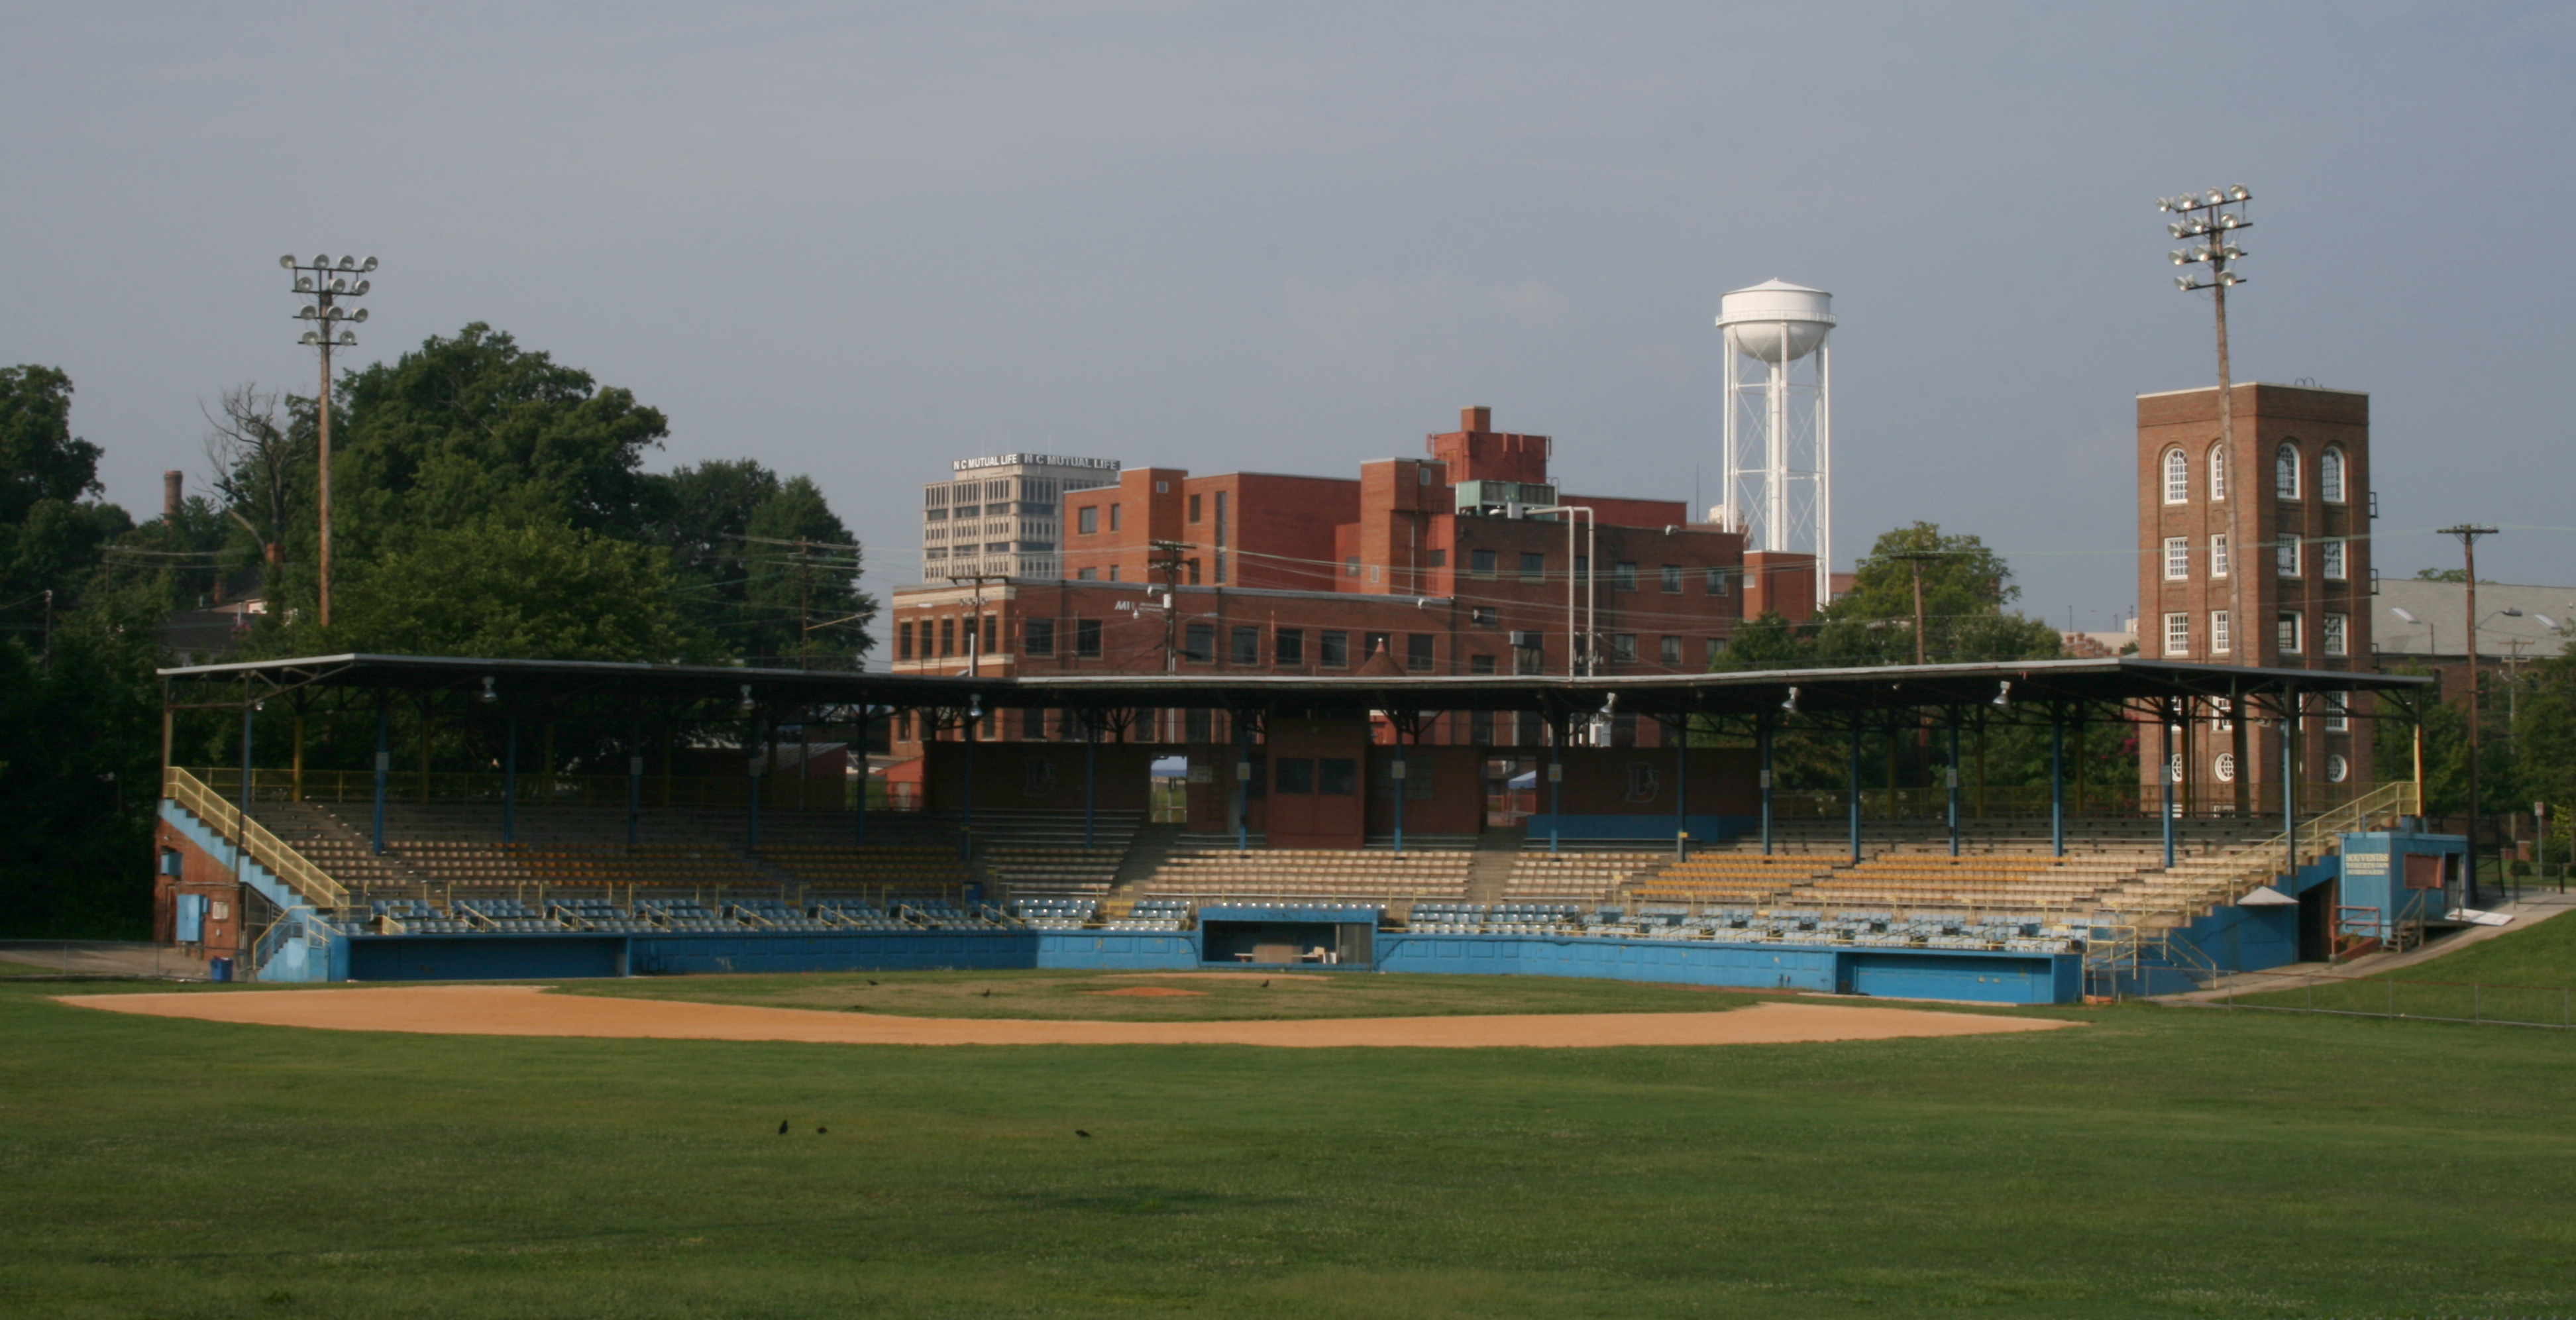 The Durham Athletic Park in 2008. From the Wikipedia Commons.